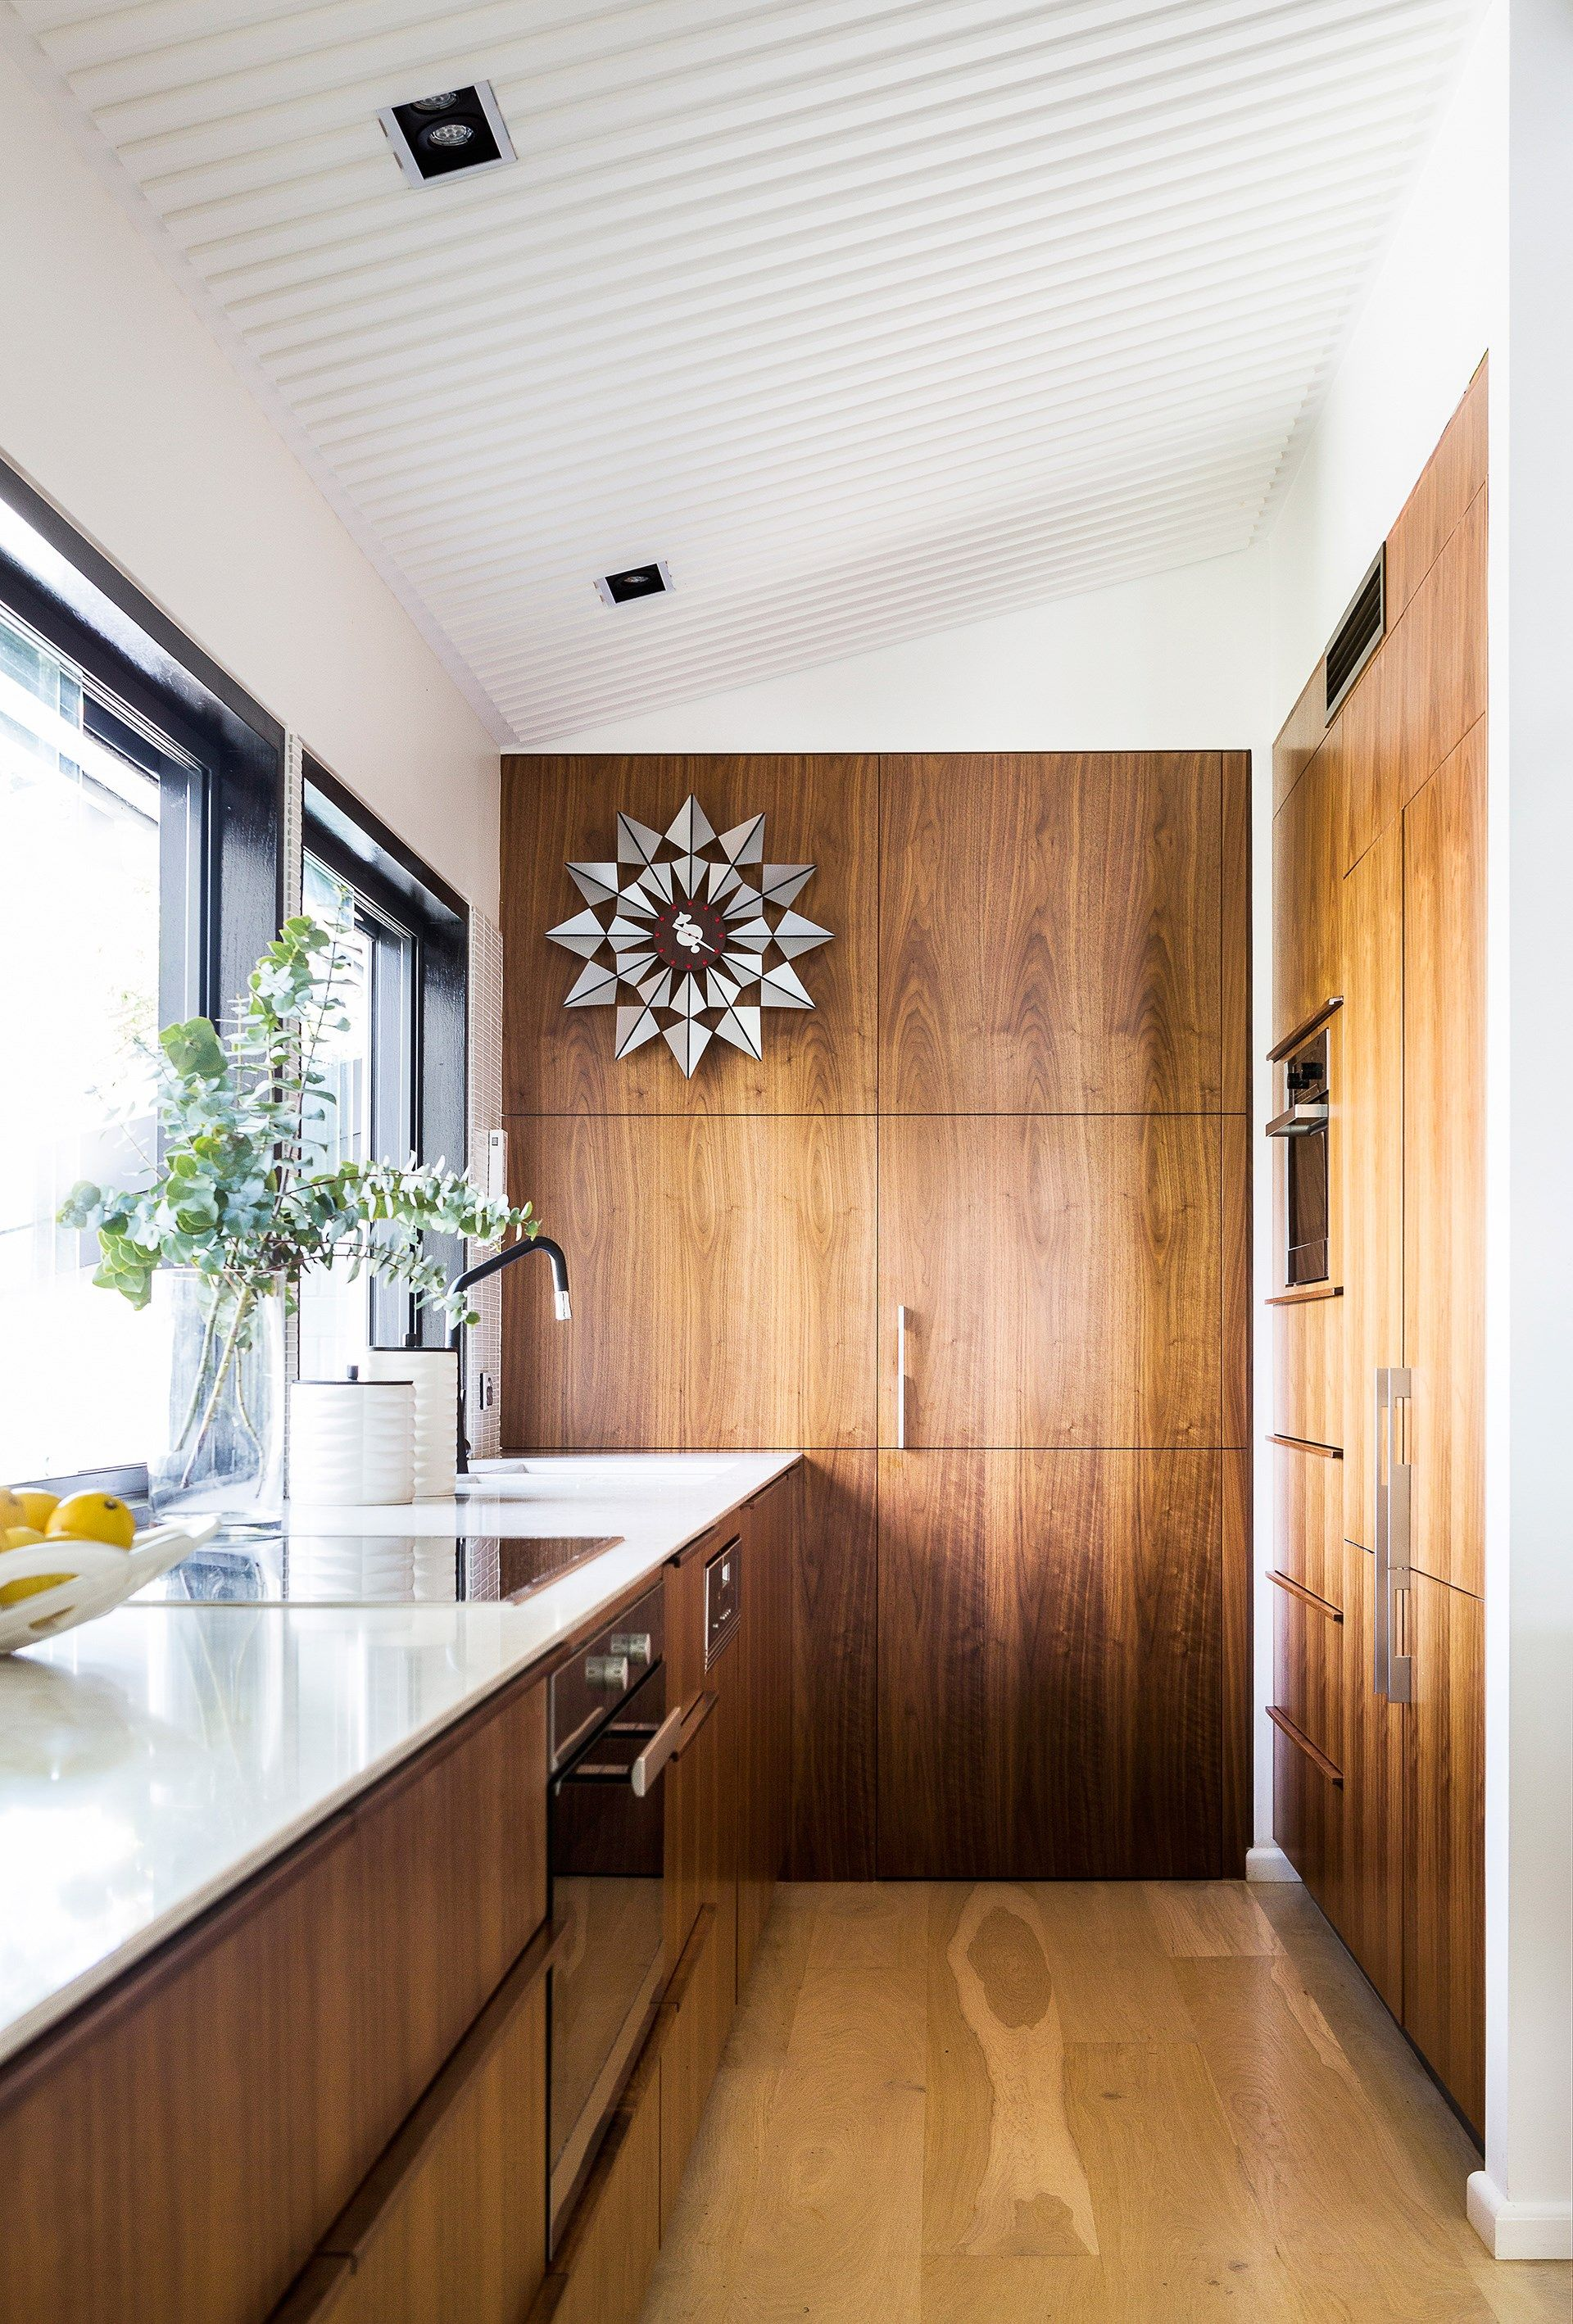 Kitchen design gallery home u garden المنزل و الحديقة pinterest